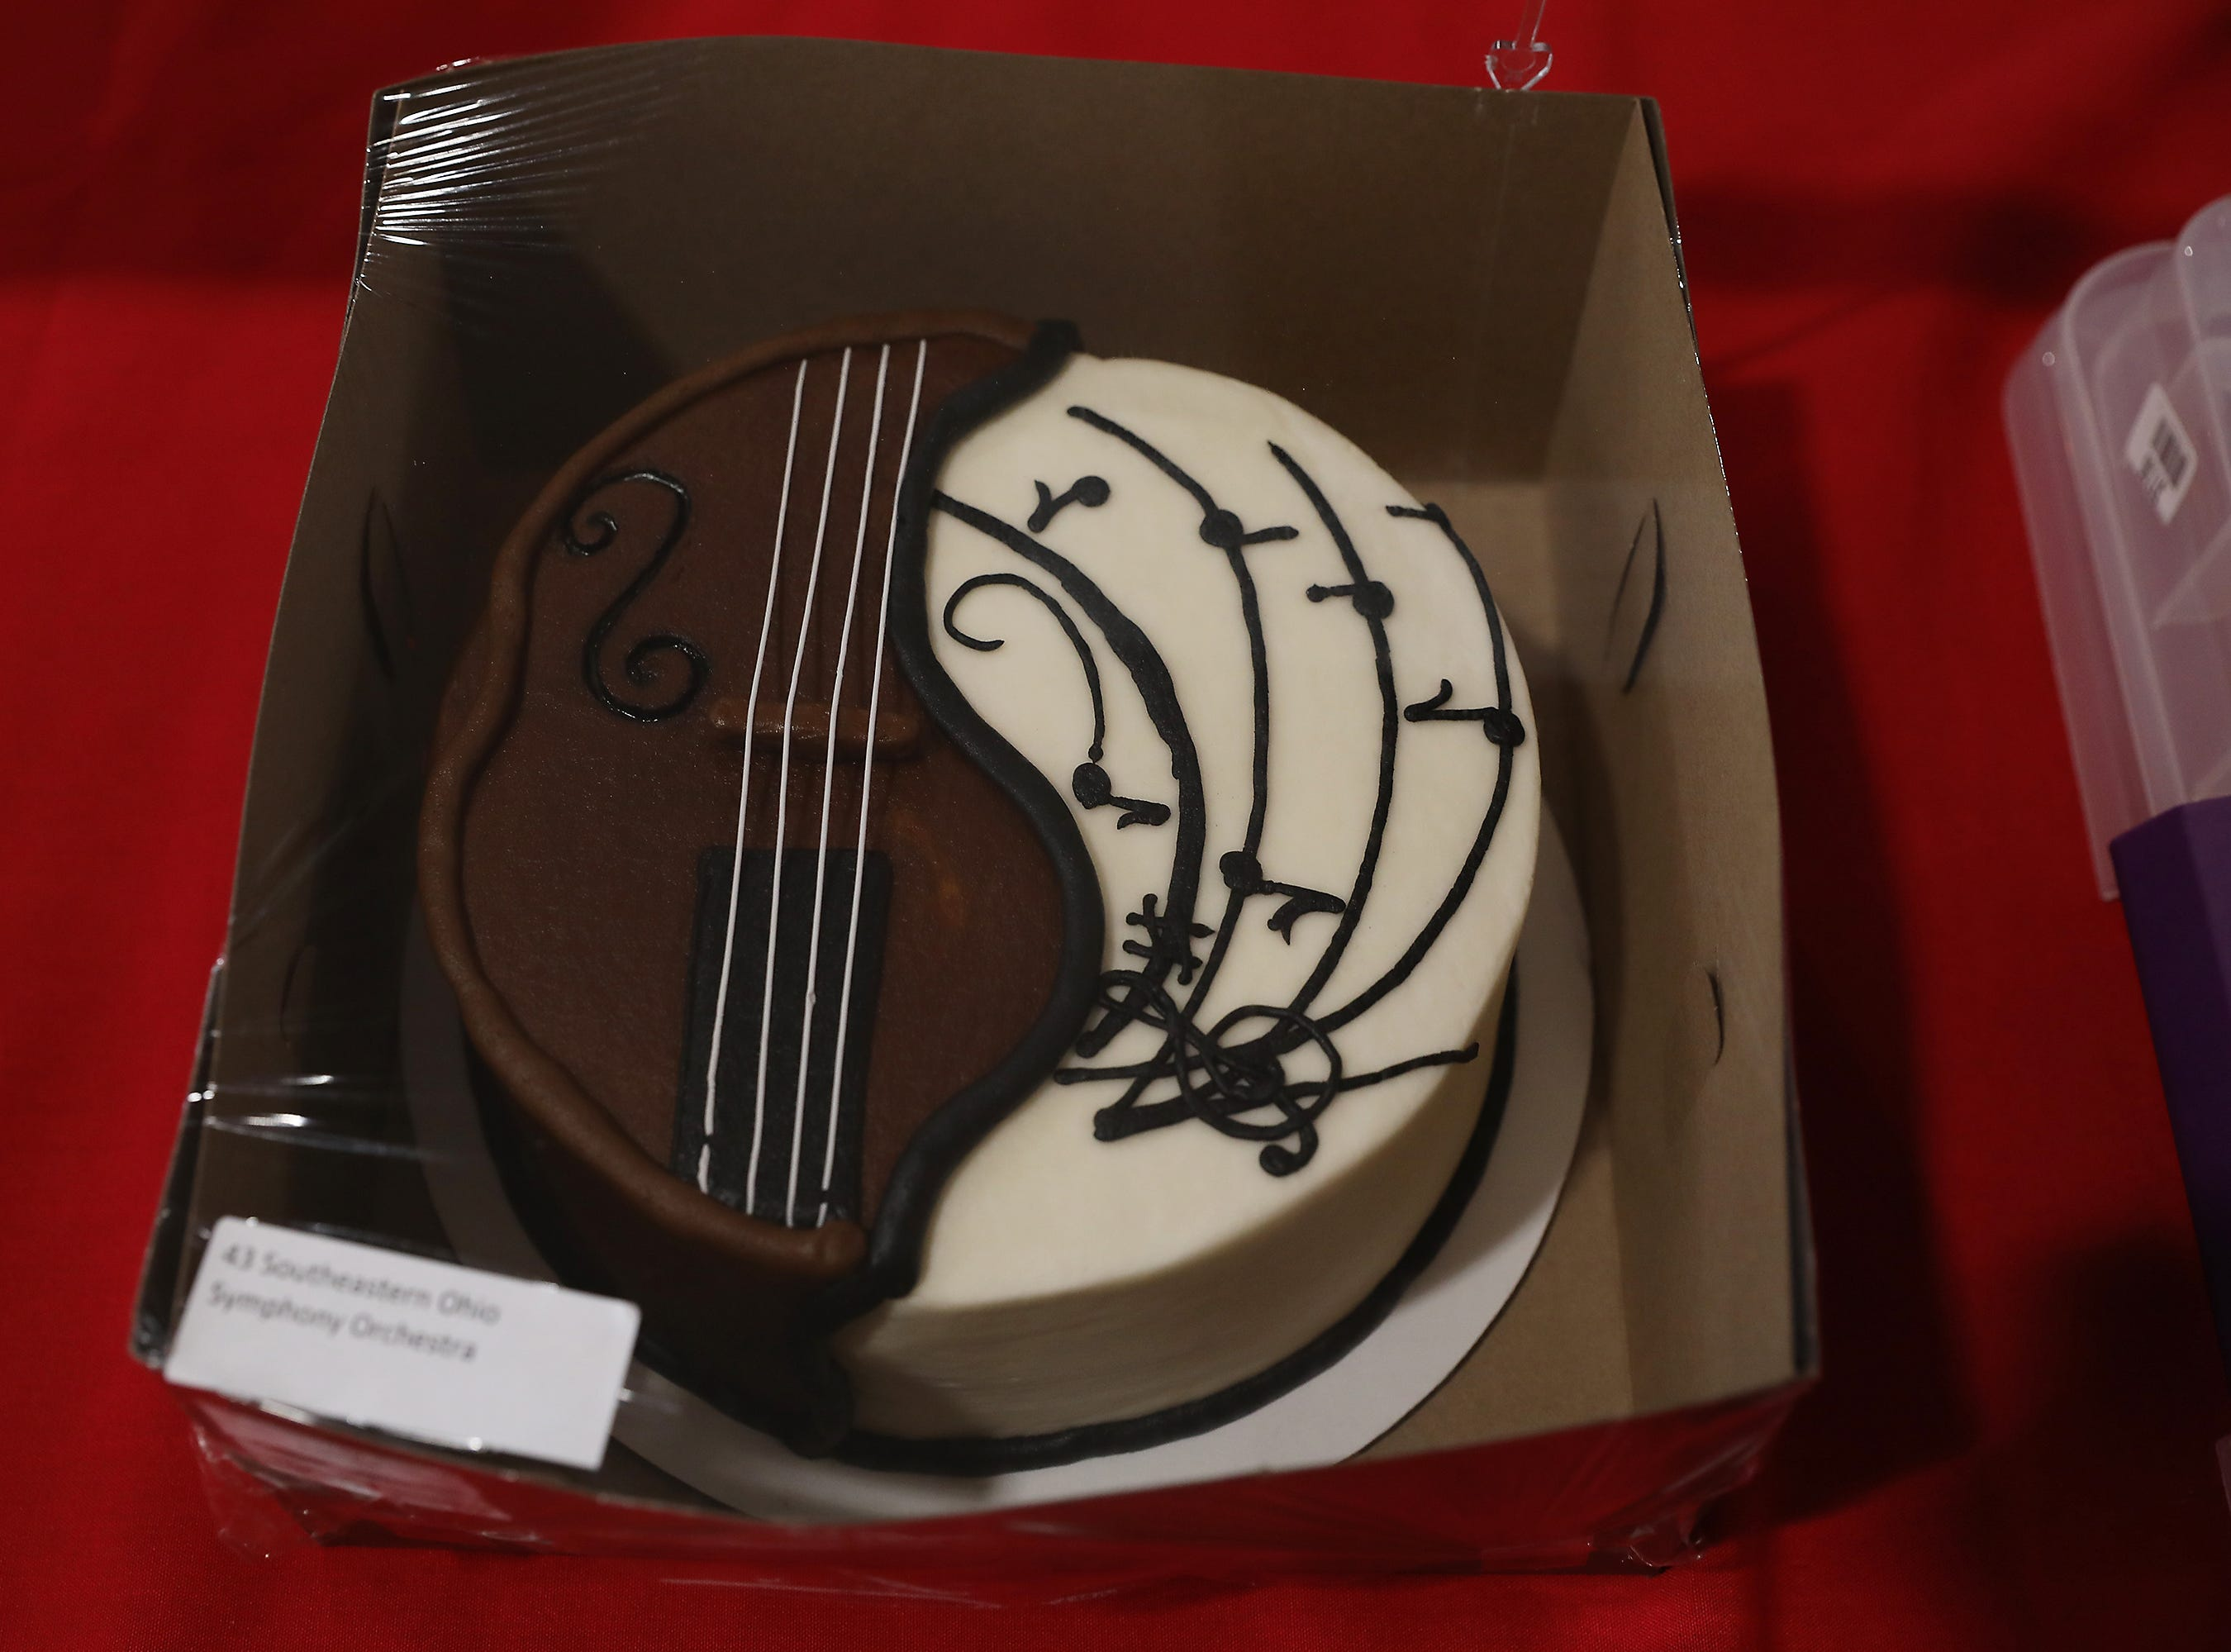 10 A.M. Thursday cake 43 Southeastern Ohio Symphony Orchestra - 2 season passes; $90